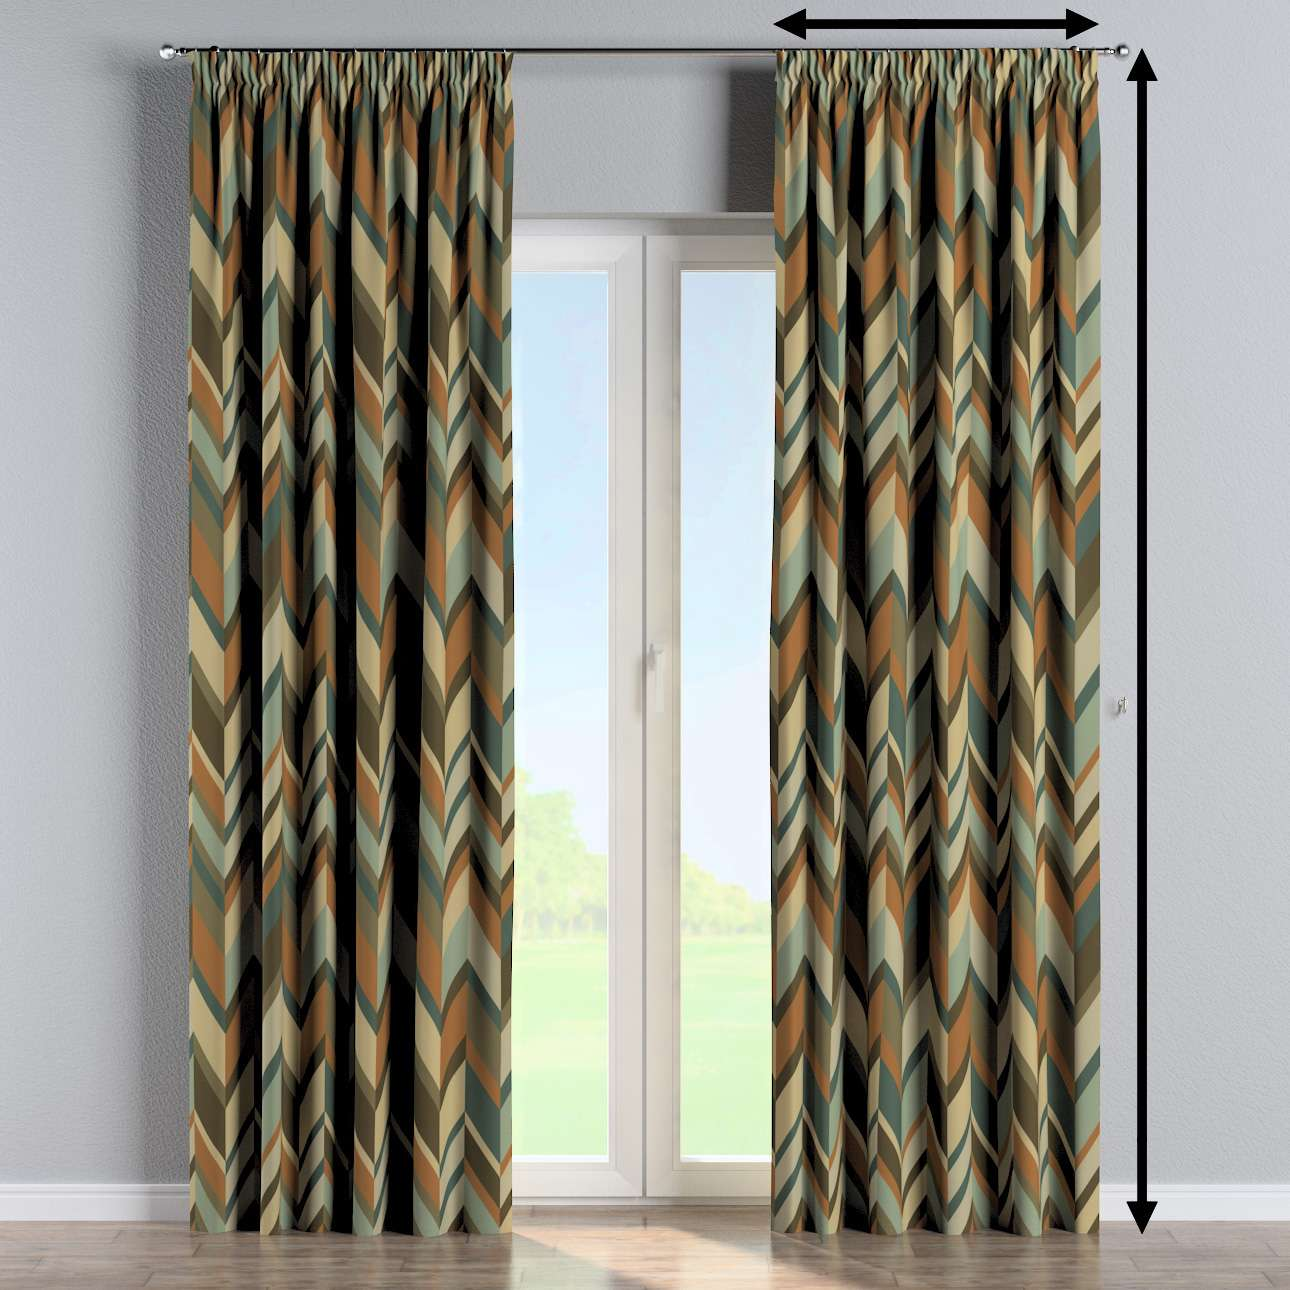 Pencil pleat curtain in collection Vintage 70's, fabric: 143-55